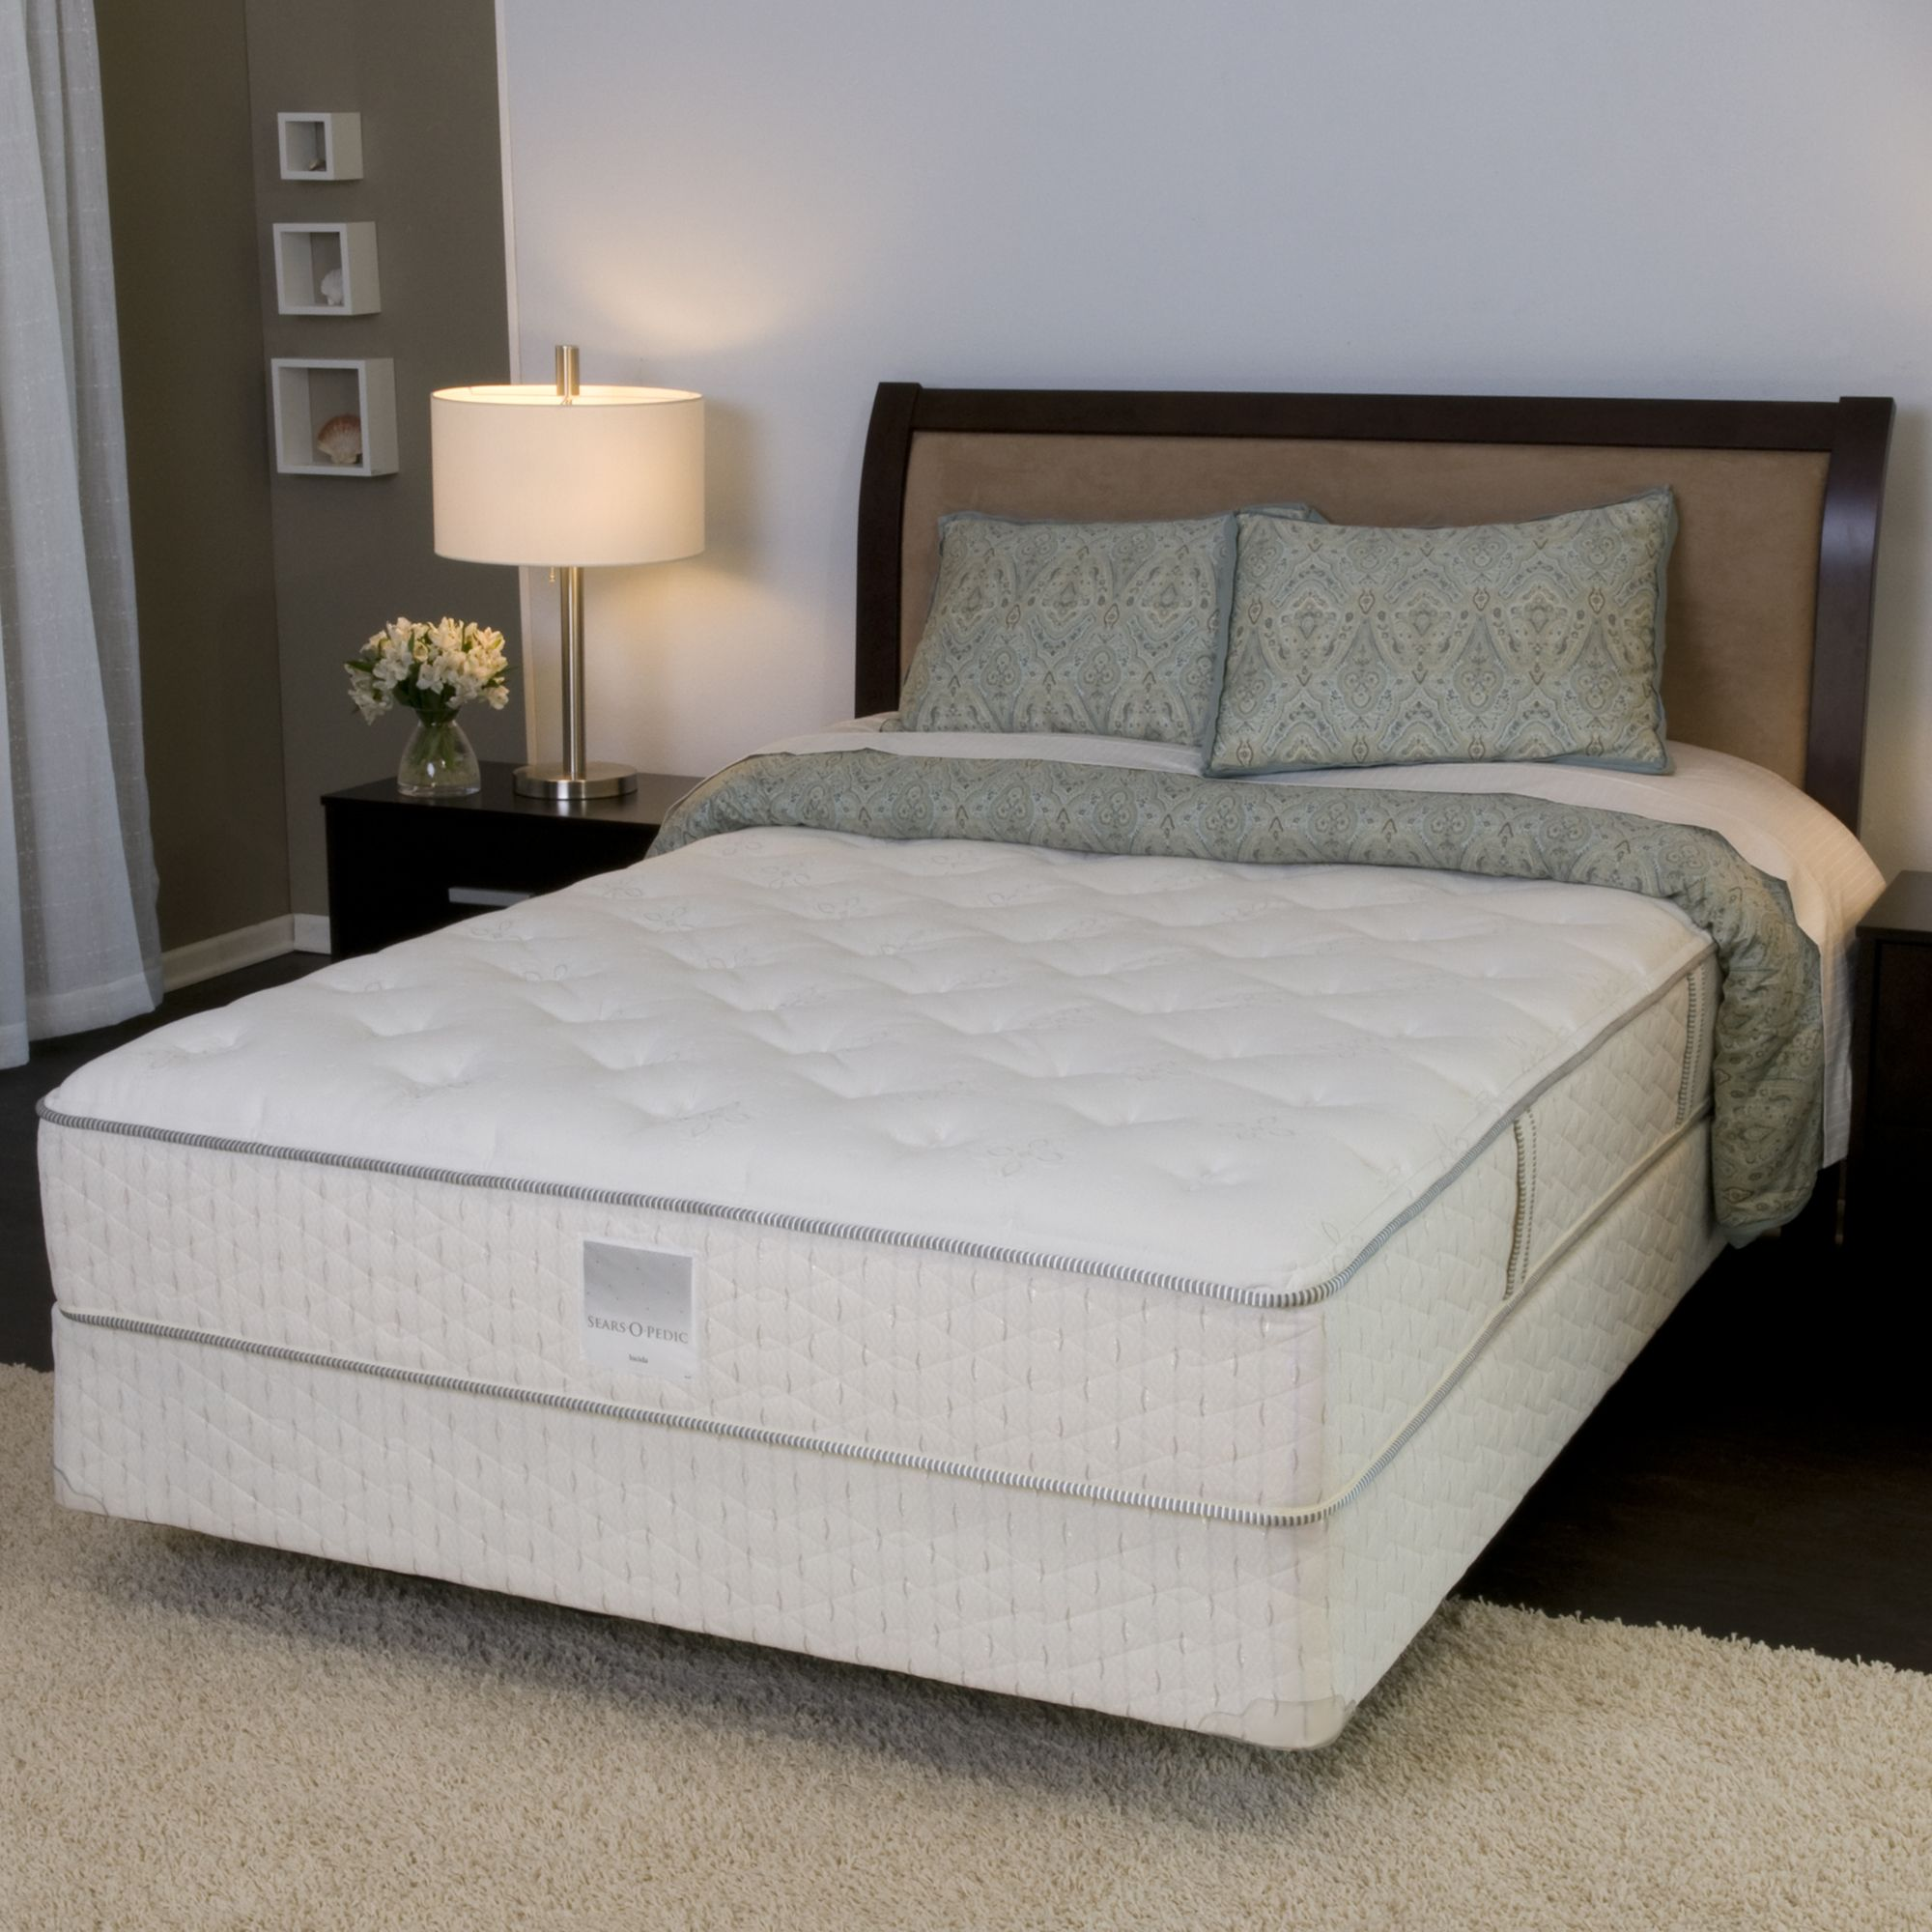 Sears-O-Pedic Queen Mattress Firm II Lucida MATTRESS ONLY